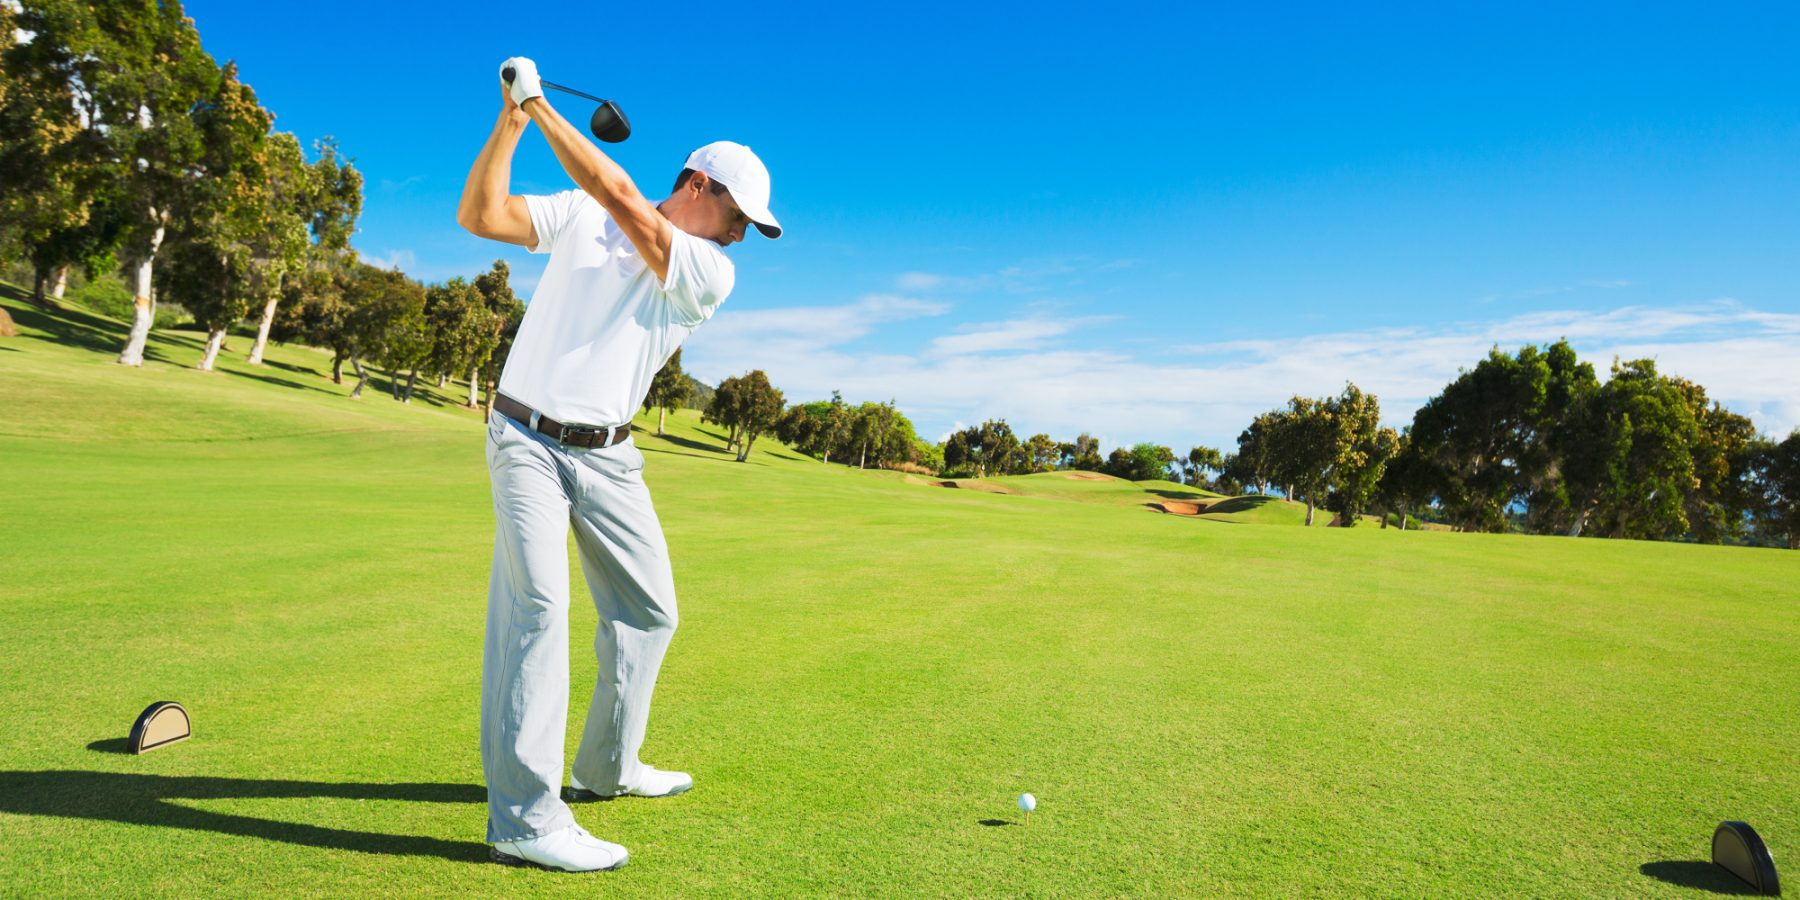 Do's and don'ts for a more powerful swing